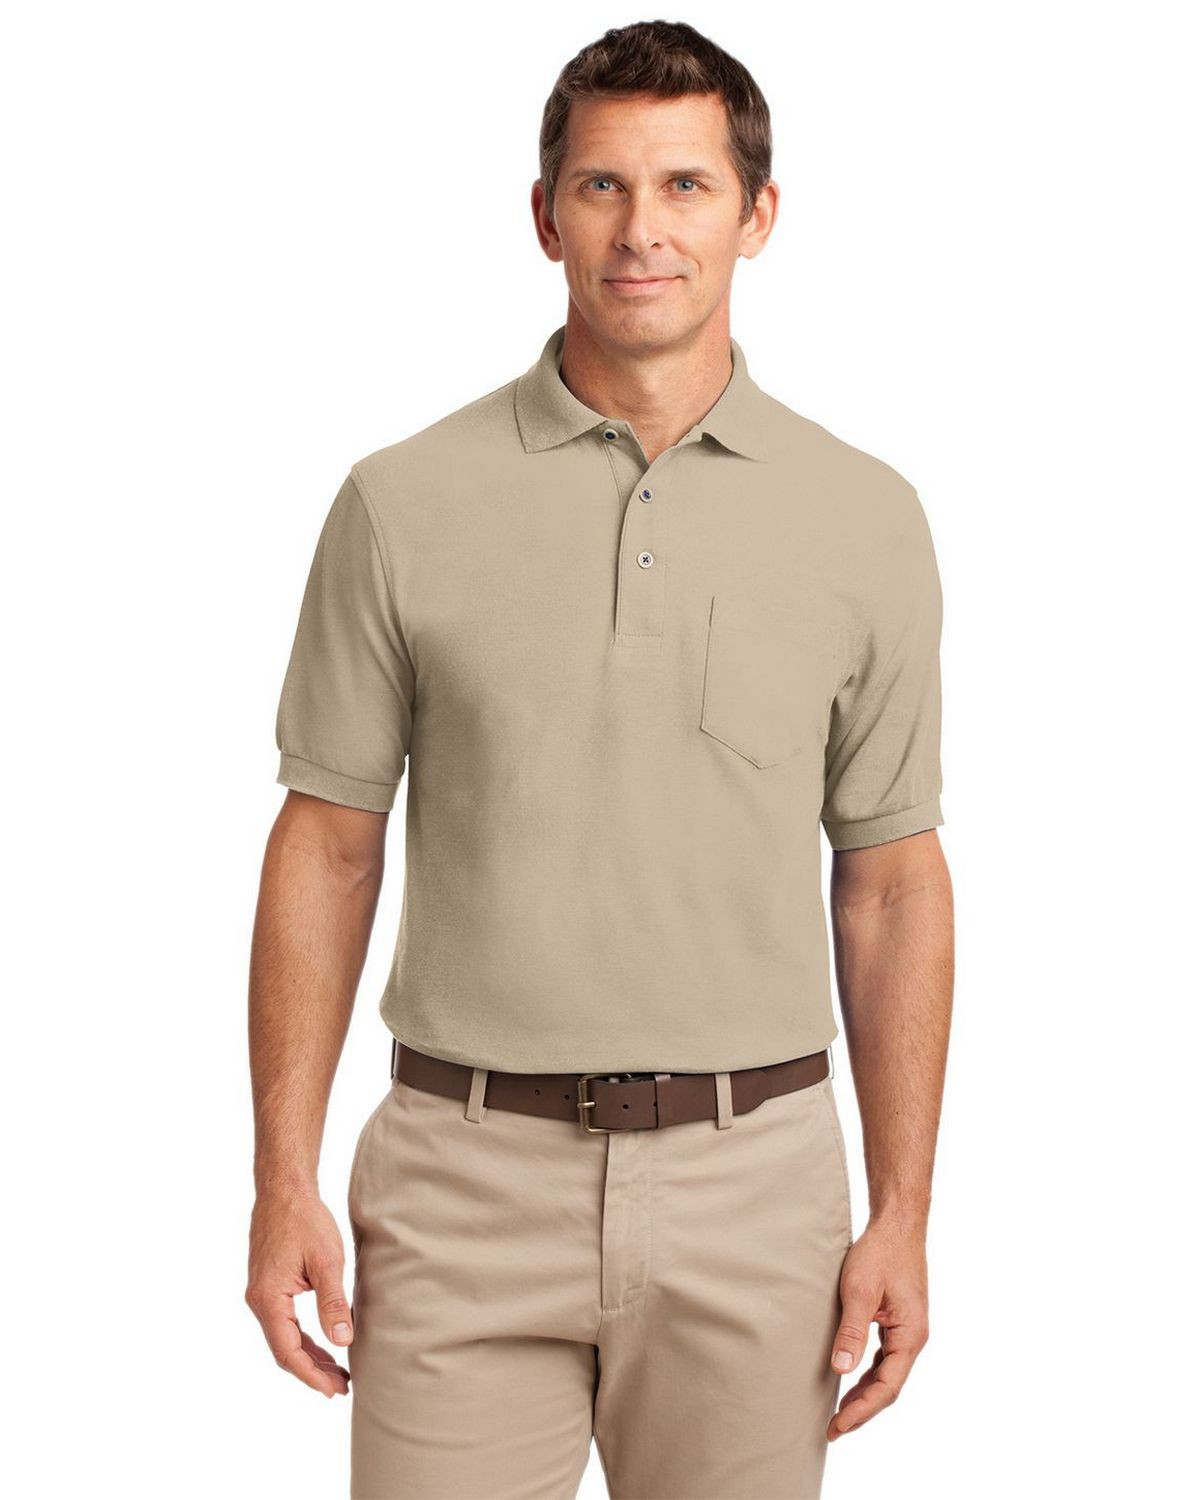 Port Authority K500P Men's Silk Touch Polo with Pocket - Stone - XS #silk